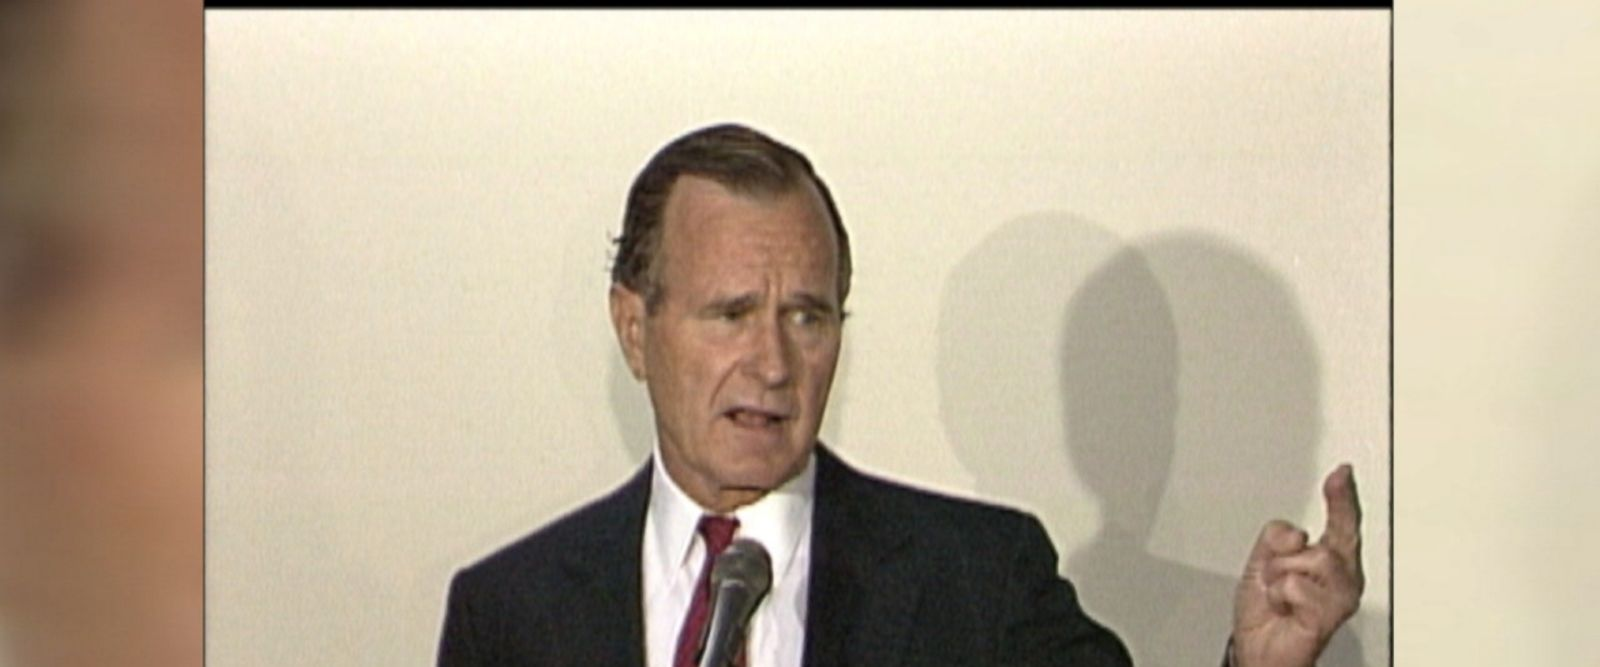 Both former presidents have spoken out during their time in office with regards to bigotry and racism.